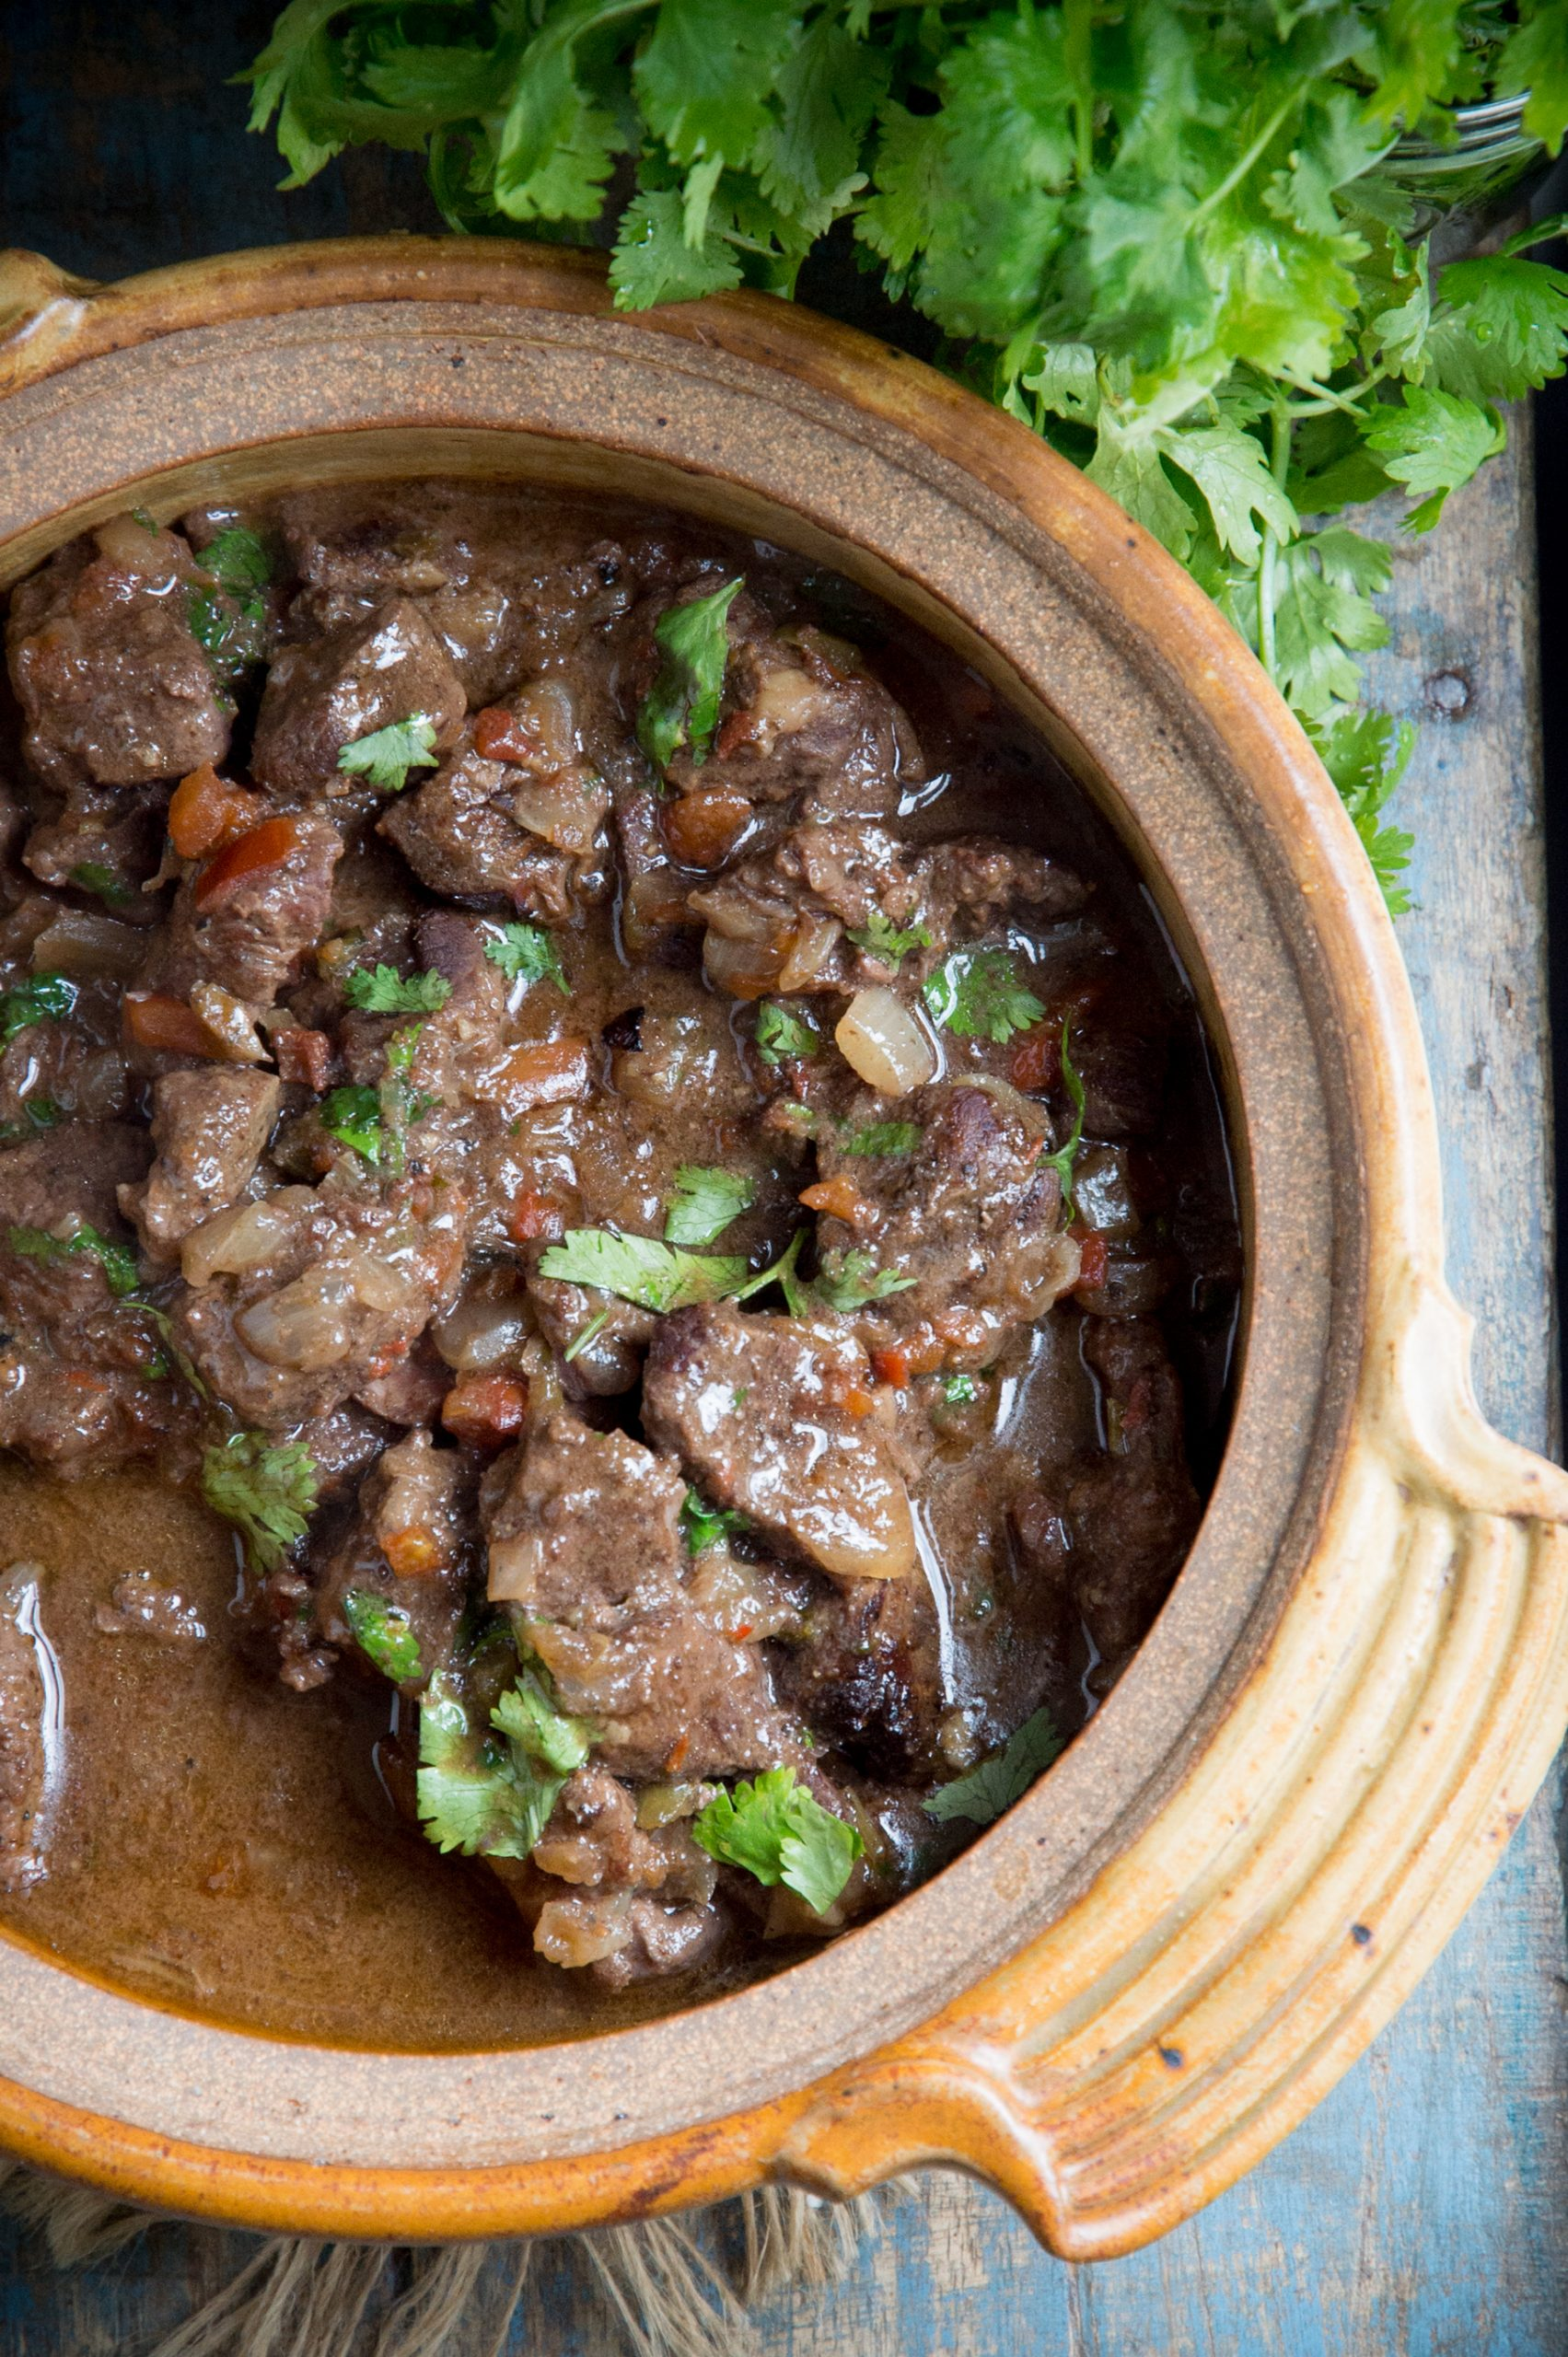 Low-Carb Slow Cooker Mexican Beef Stew-Served in a ceramic bowl.